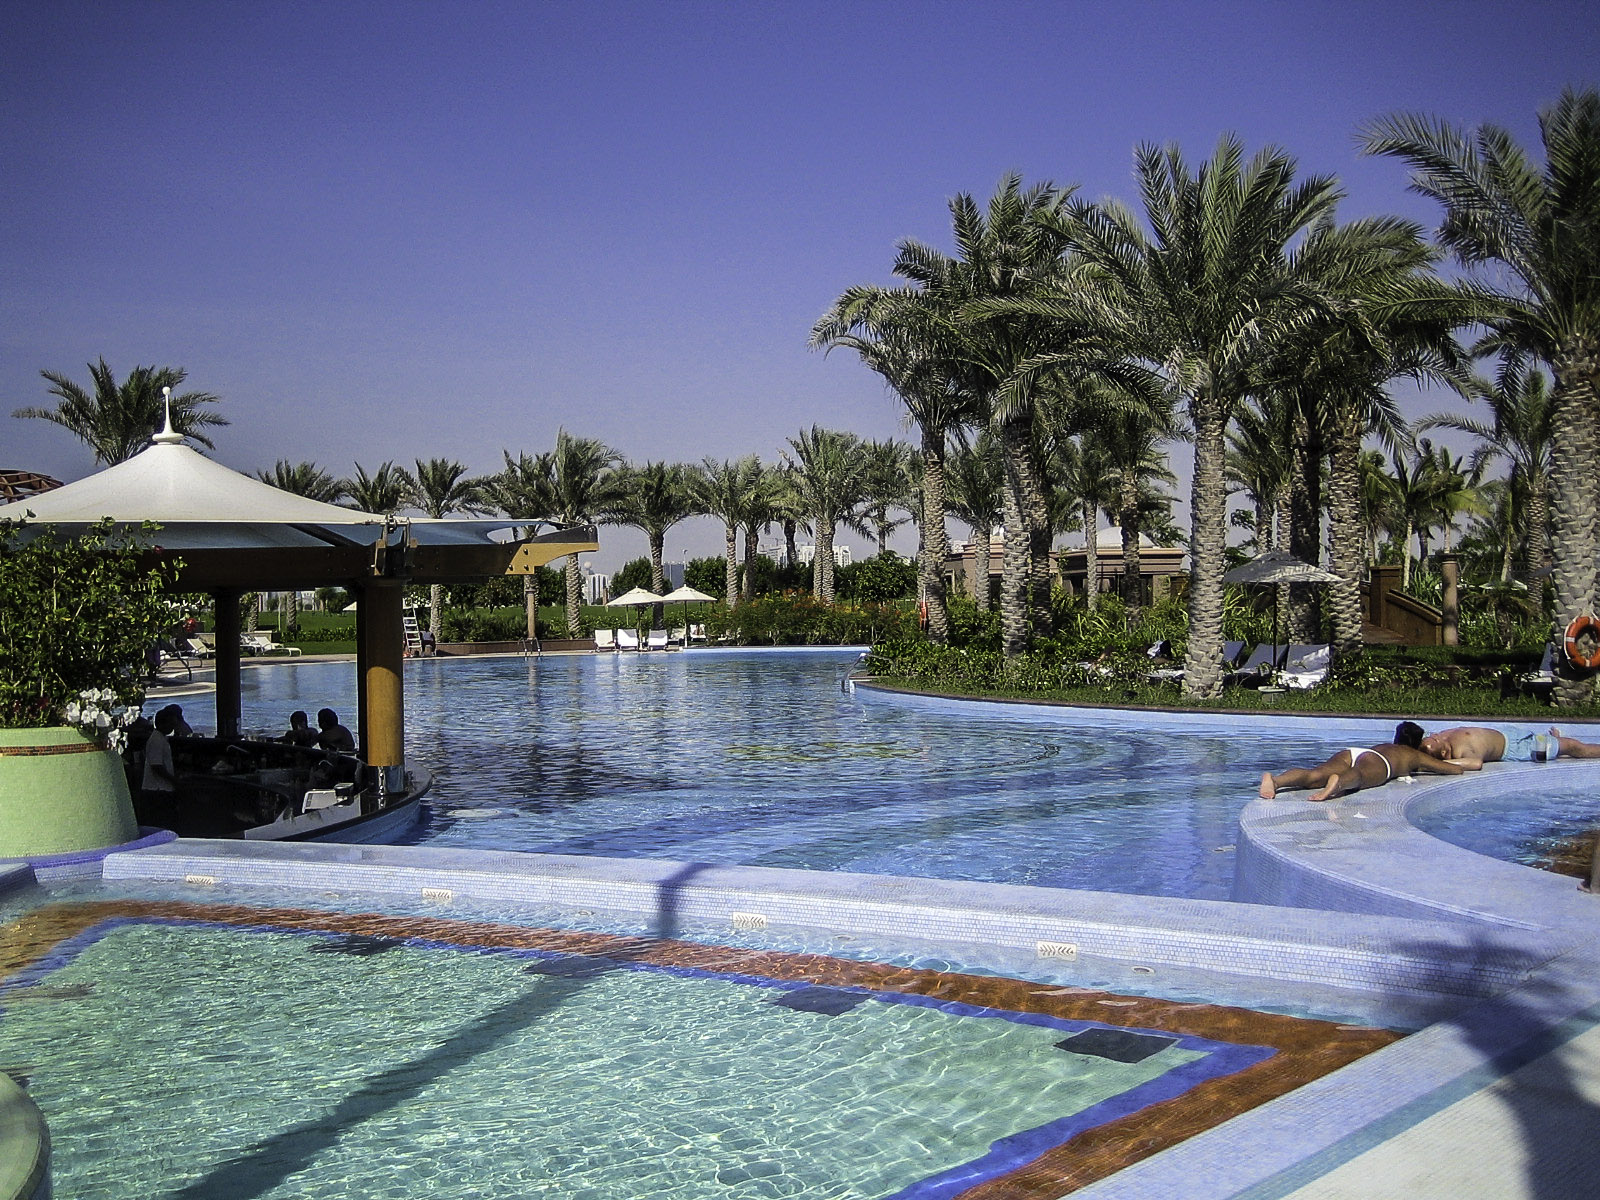 Emirate Palace Swimming Pool In Abu Dhabi United Arab Emirates Uae Image Free Stock Photo